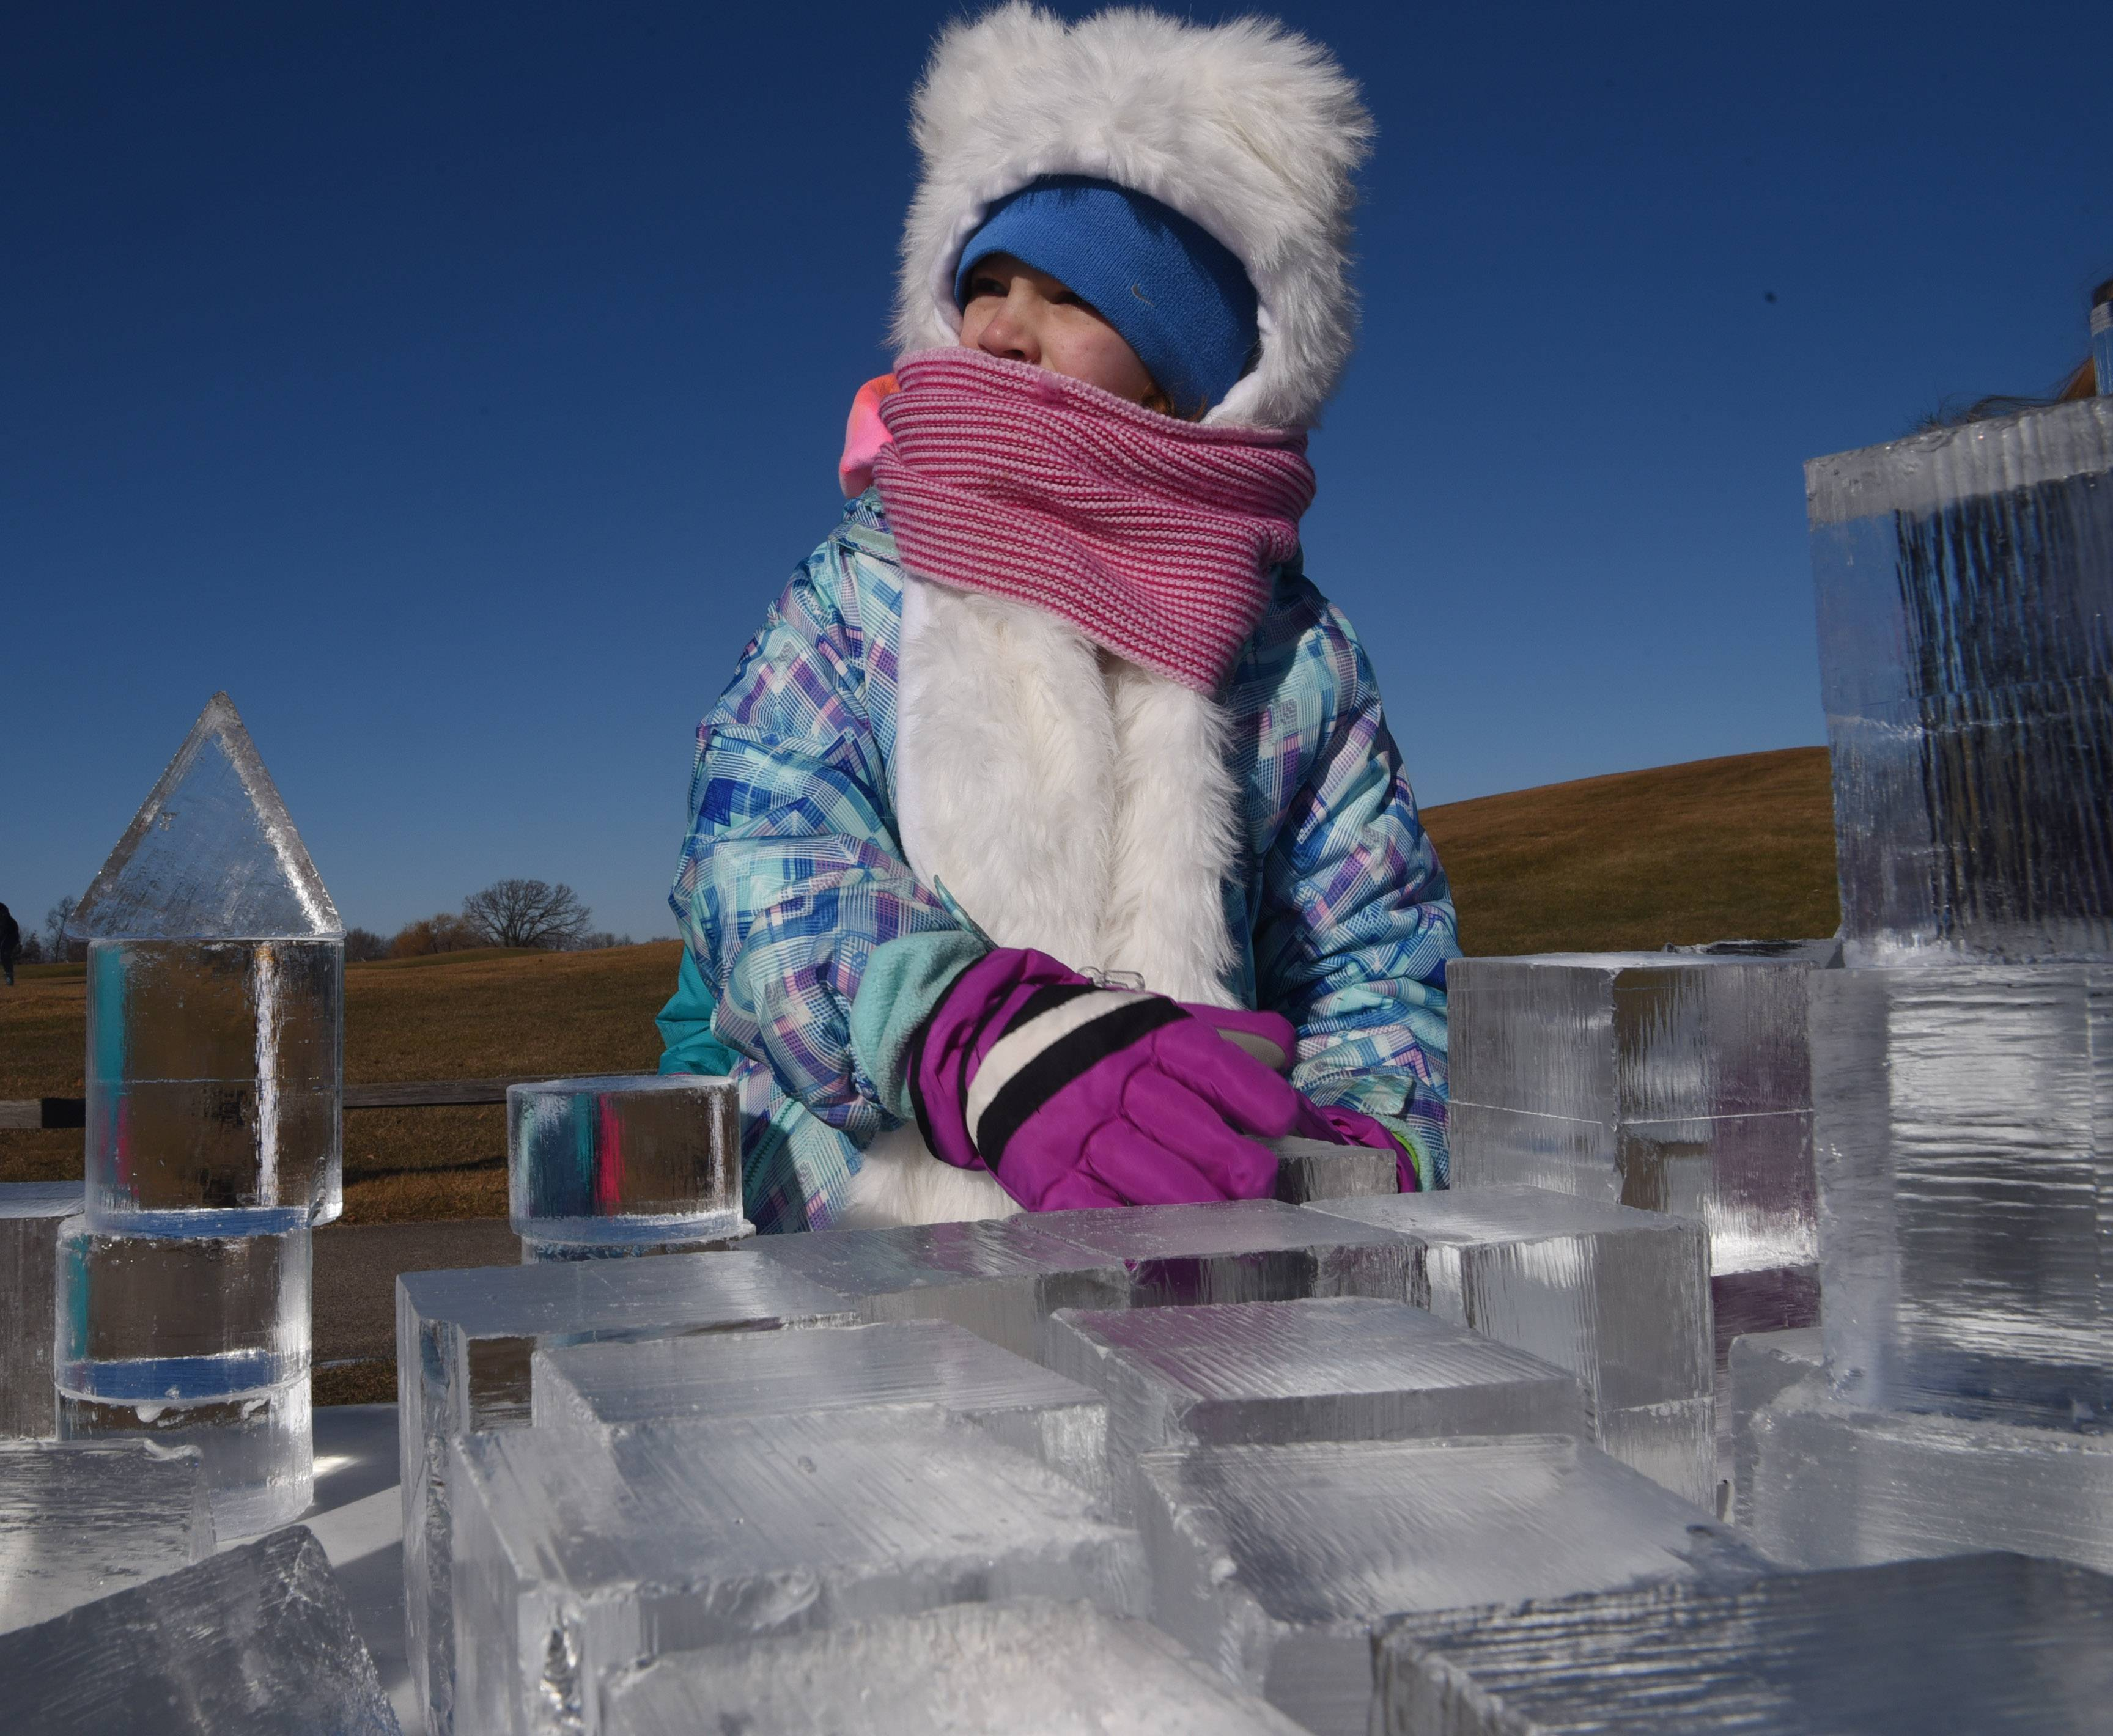 Olivia Wood, 8, of Grayslake stacks blocks of ice during Frosty Fest at Bittersweet Golf Club in Gurnee Saturday.